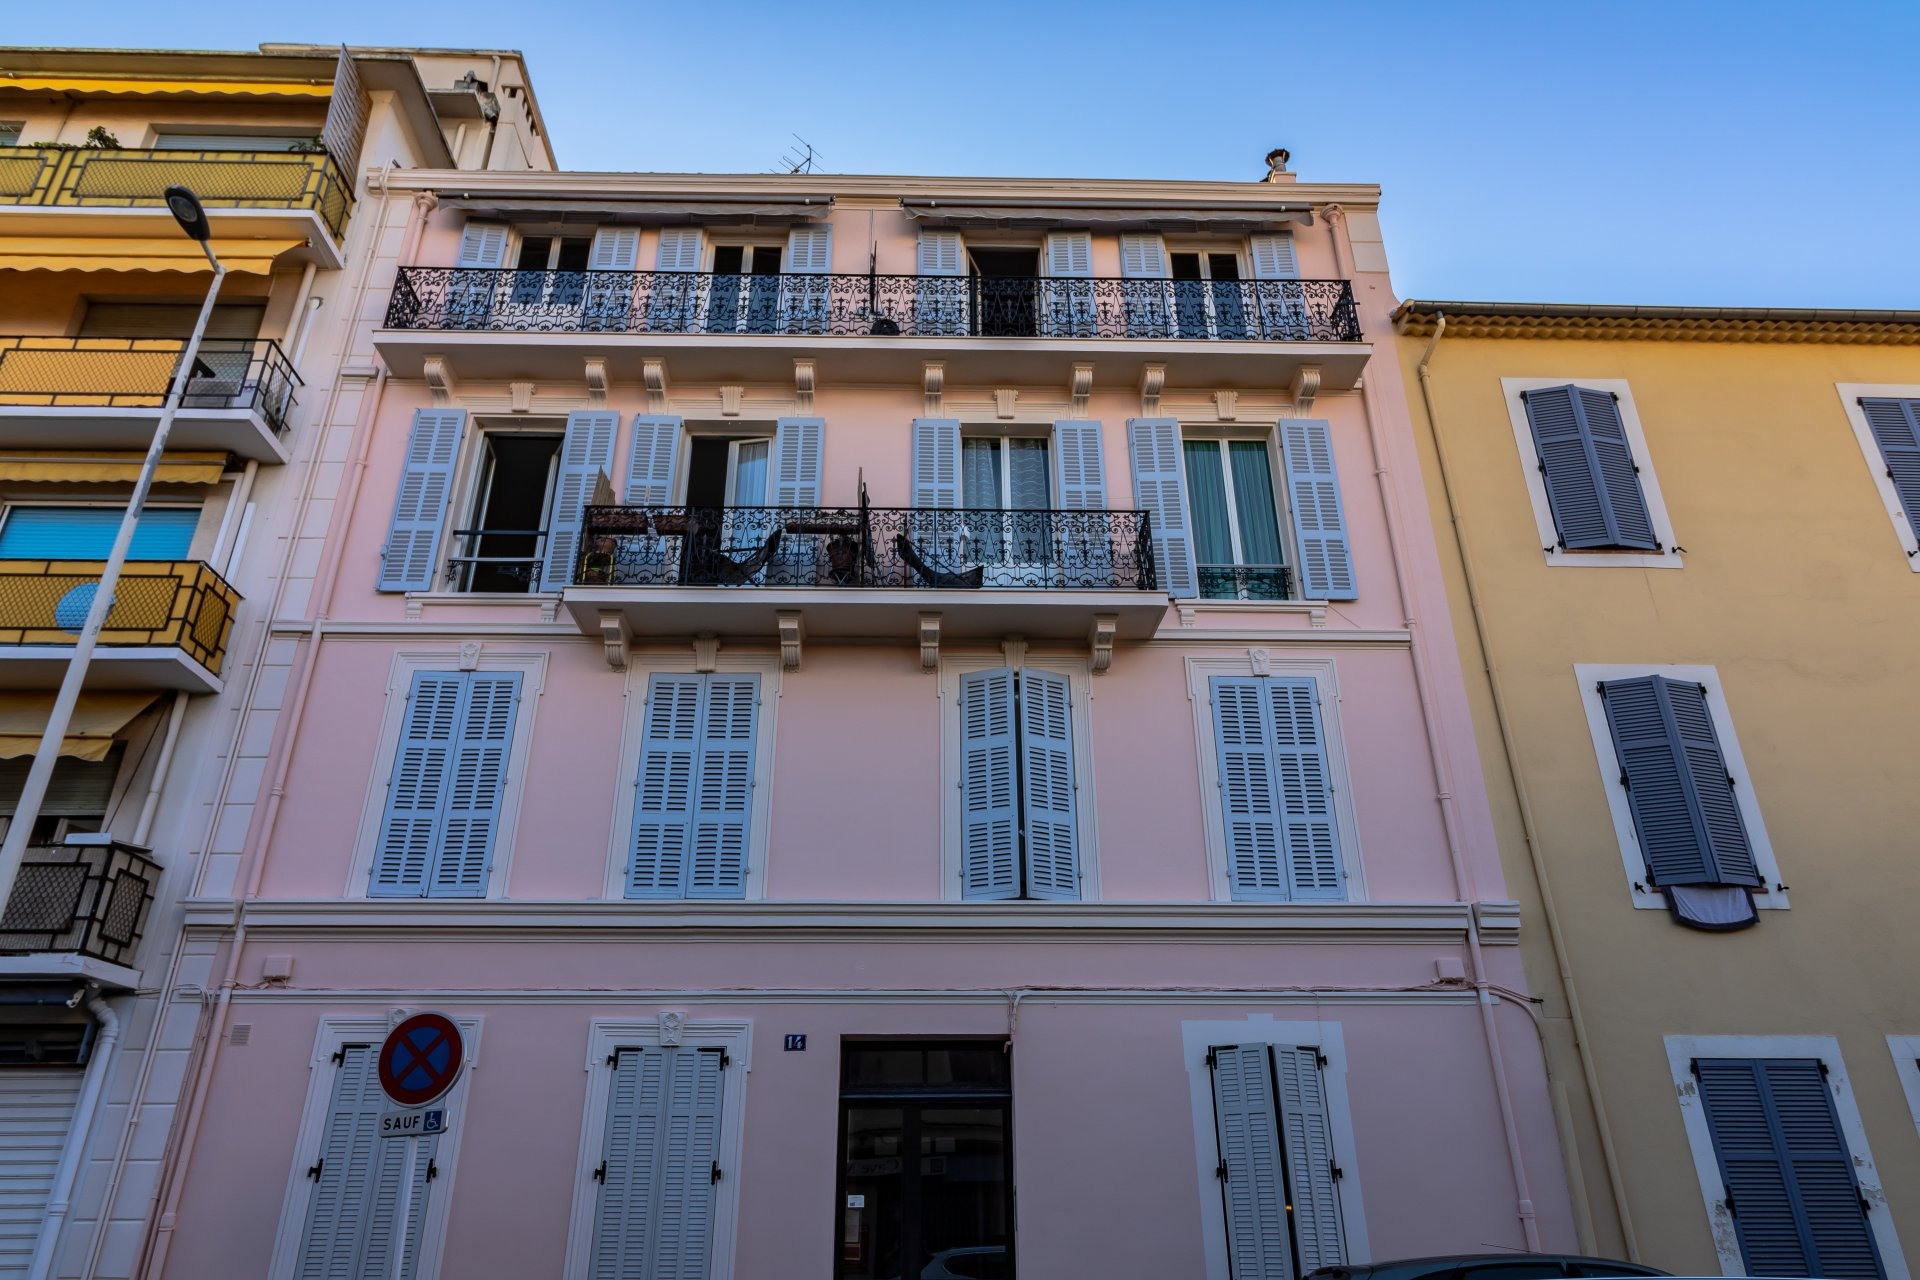 cannes la bocca, 1 bedroom for renting